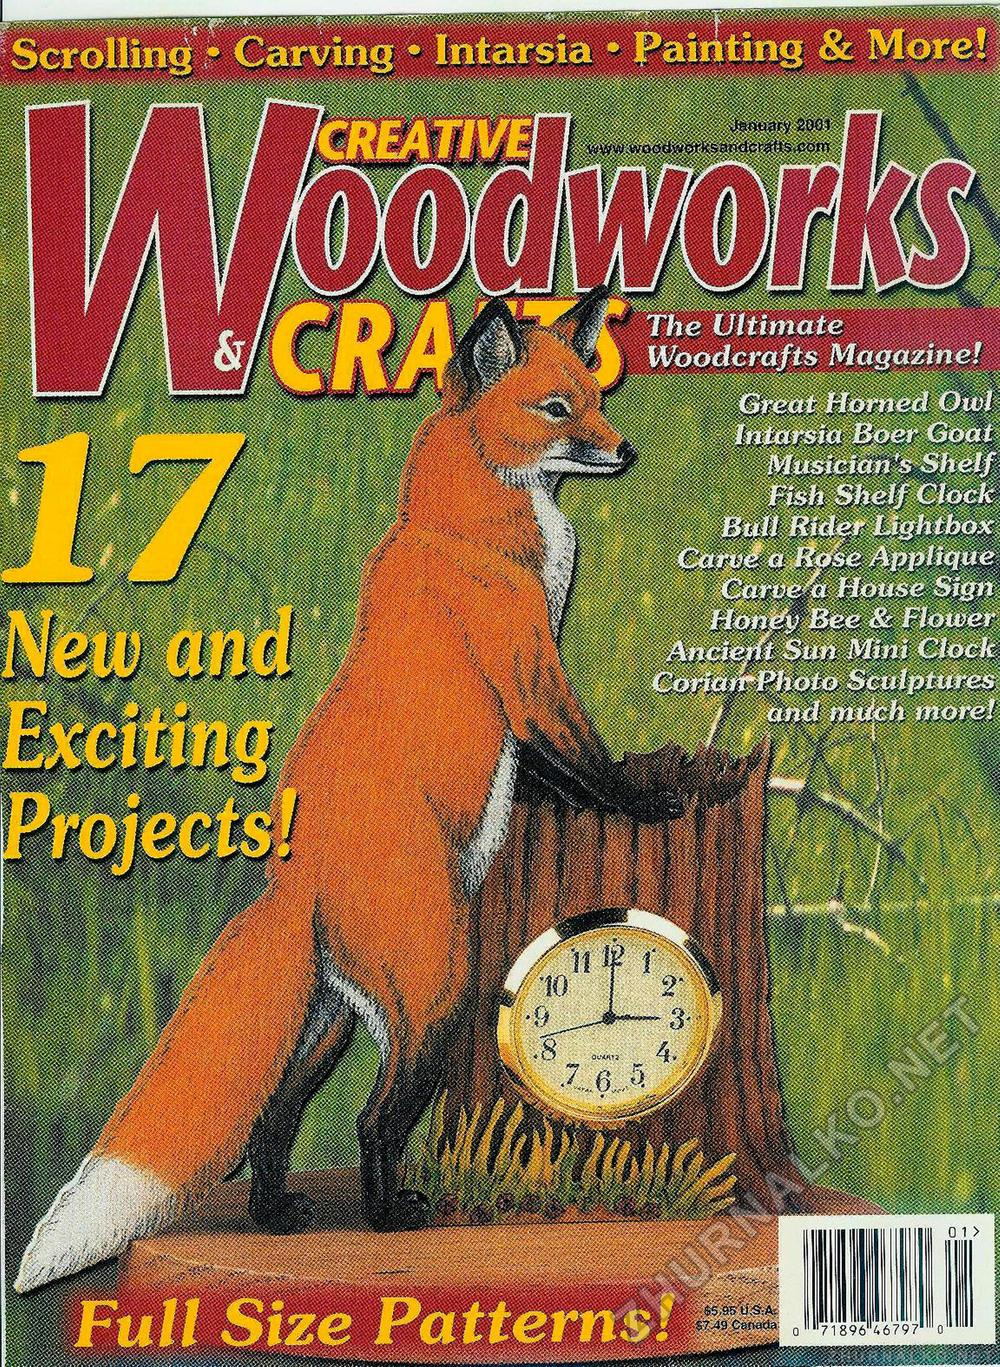 Creative Woodworks & crafts 2001-01, страница 1